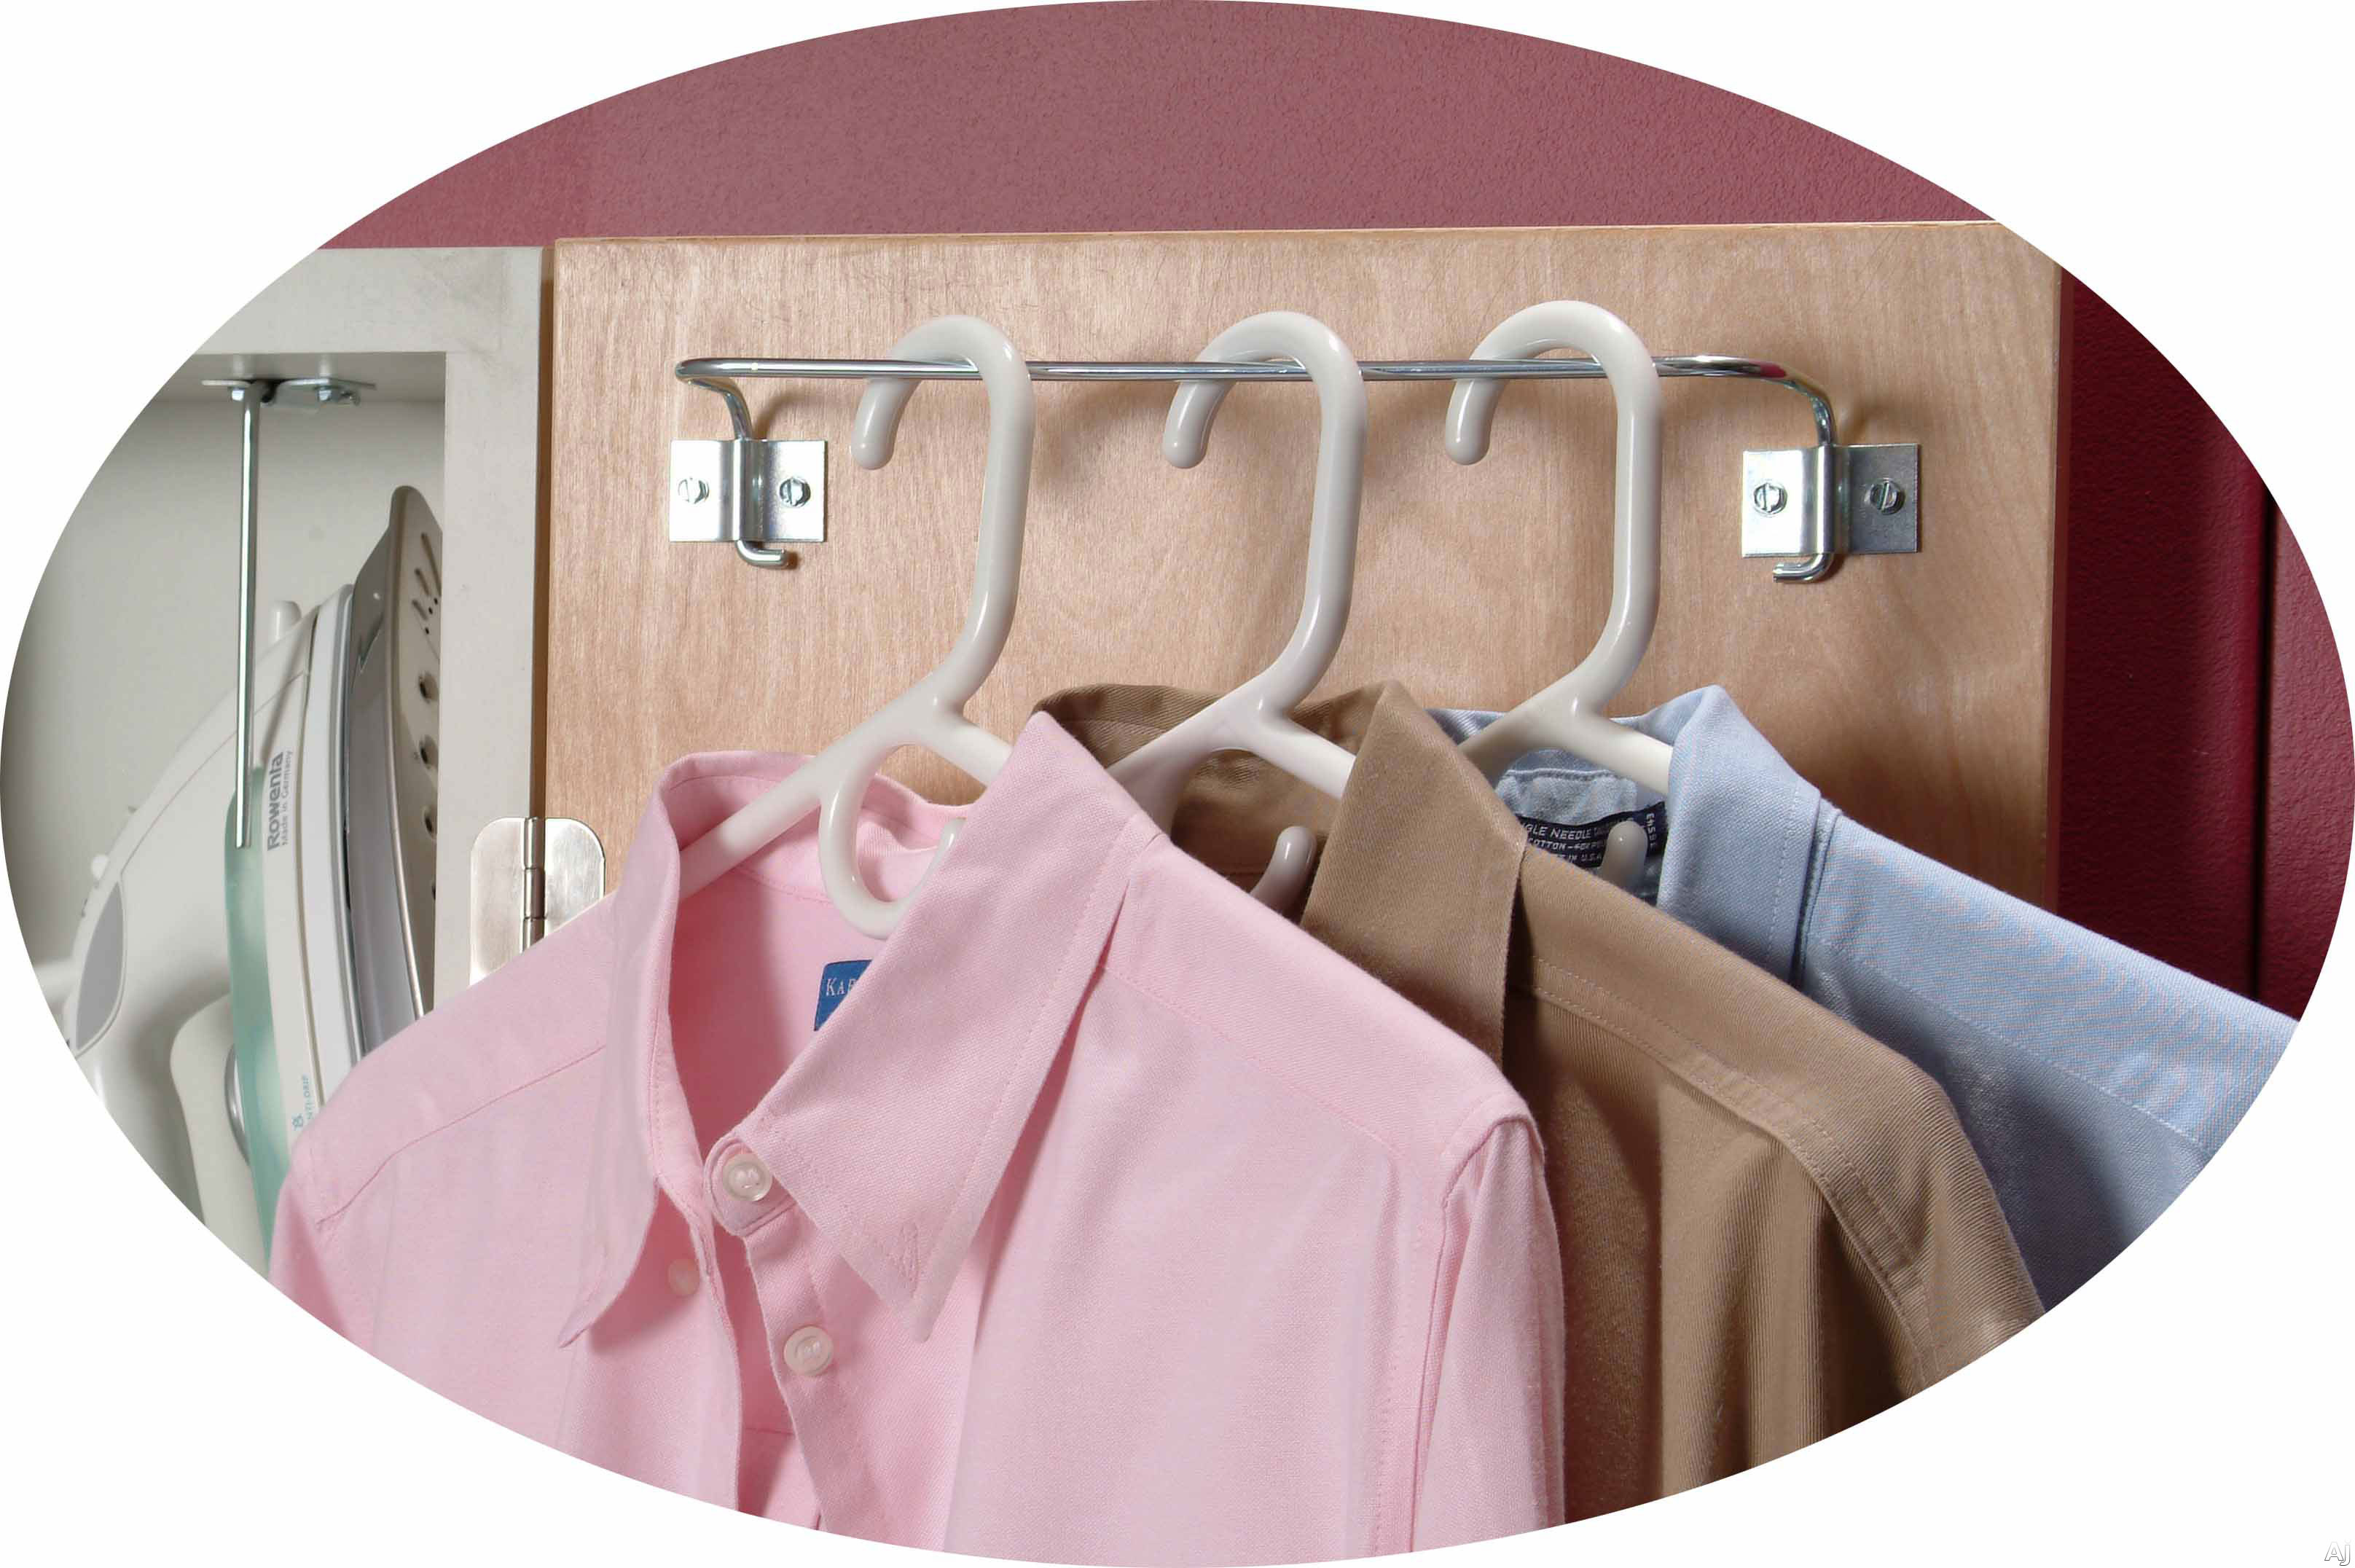 View of Garment Rack